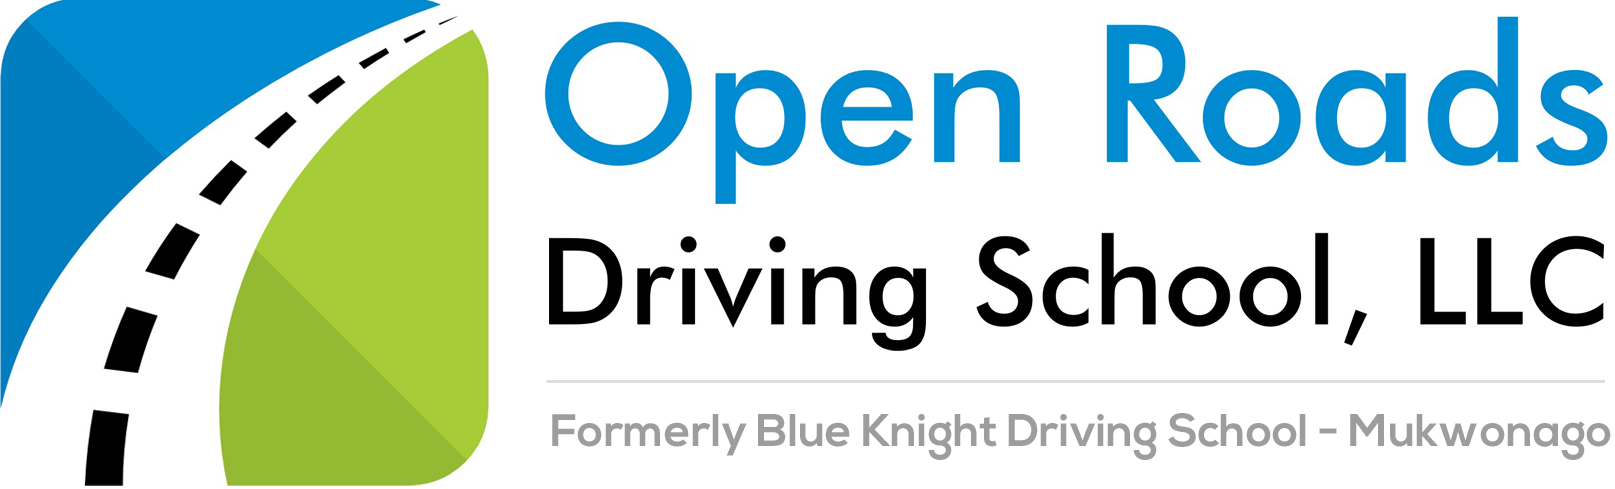 Open Roads Driving School LLC | Muskego